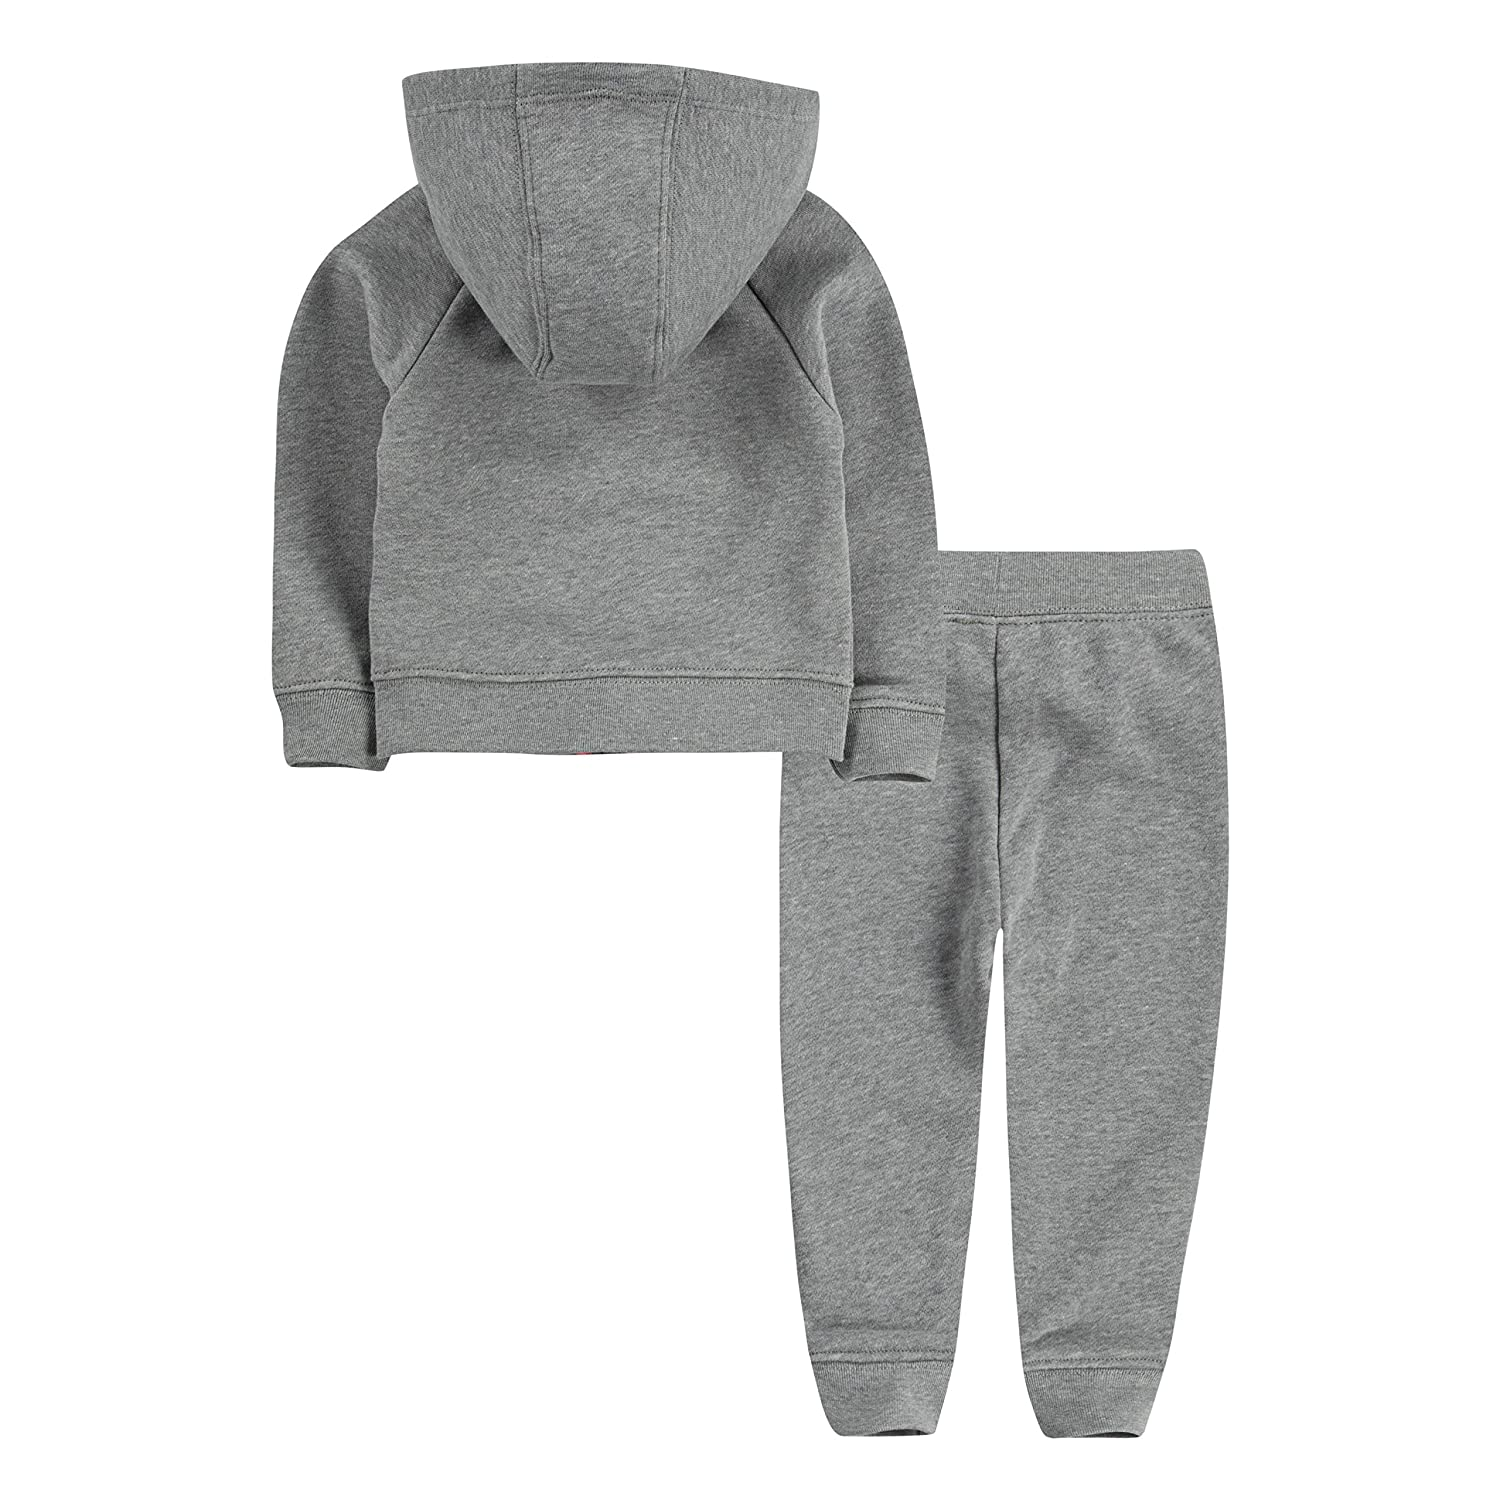 4cd47604104 Nike Children's Apparel Girls' Toddler Hoodie and Joggers 2-Piece Set